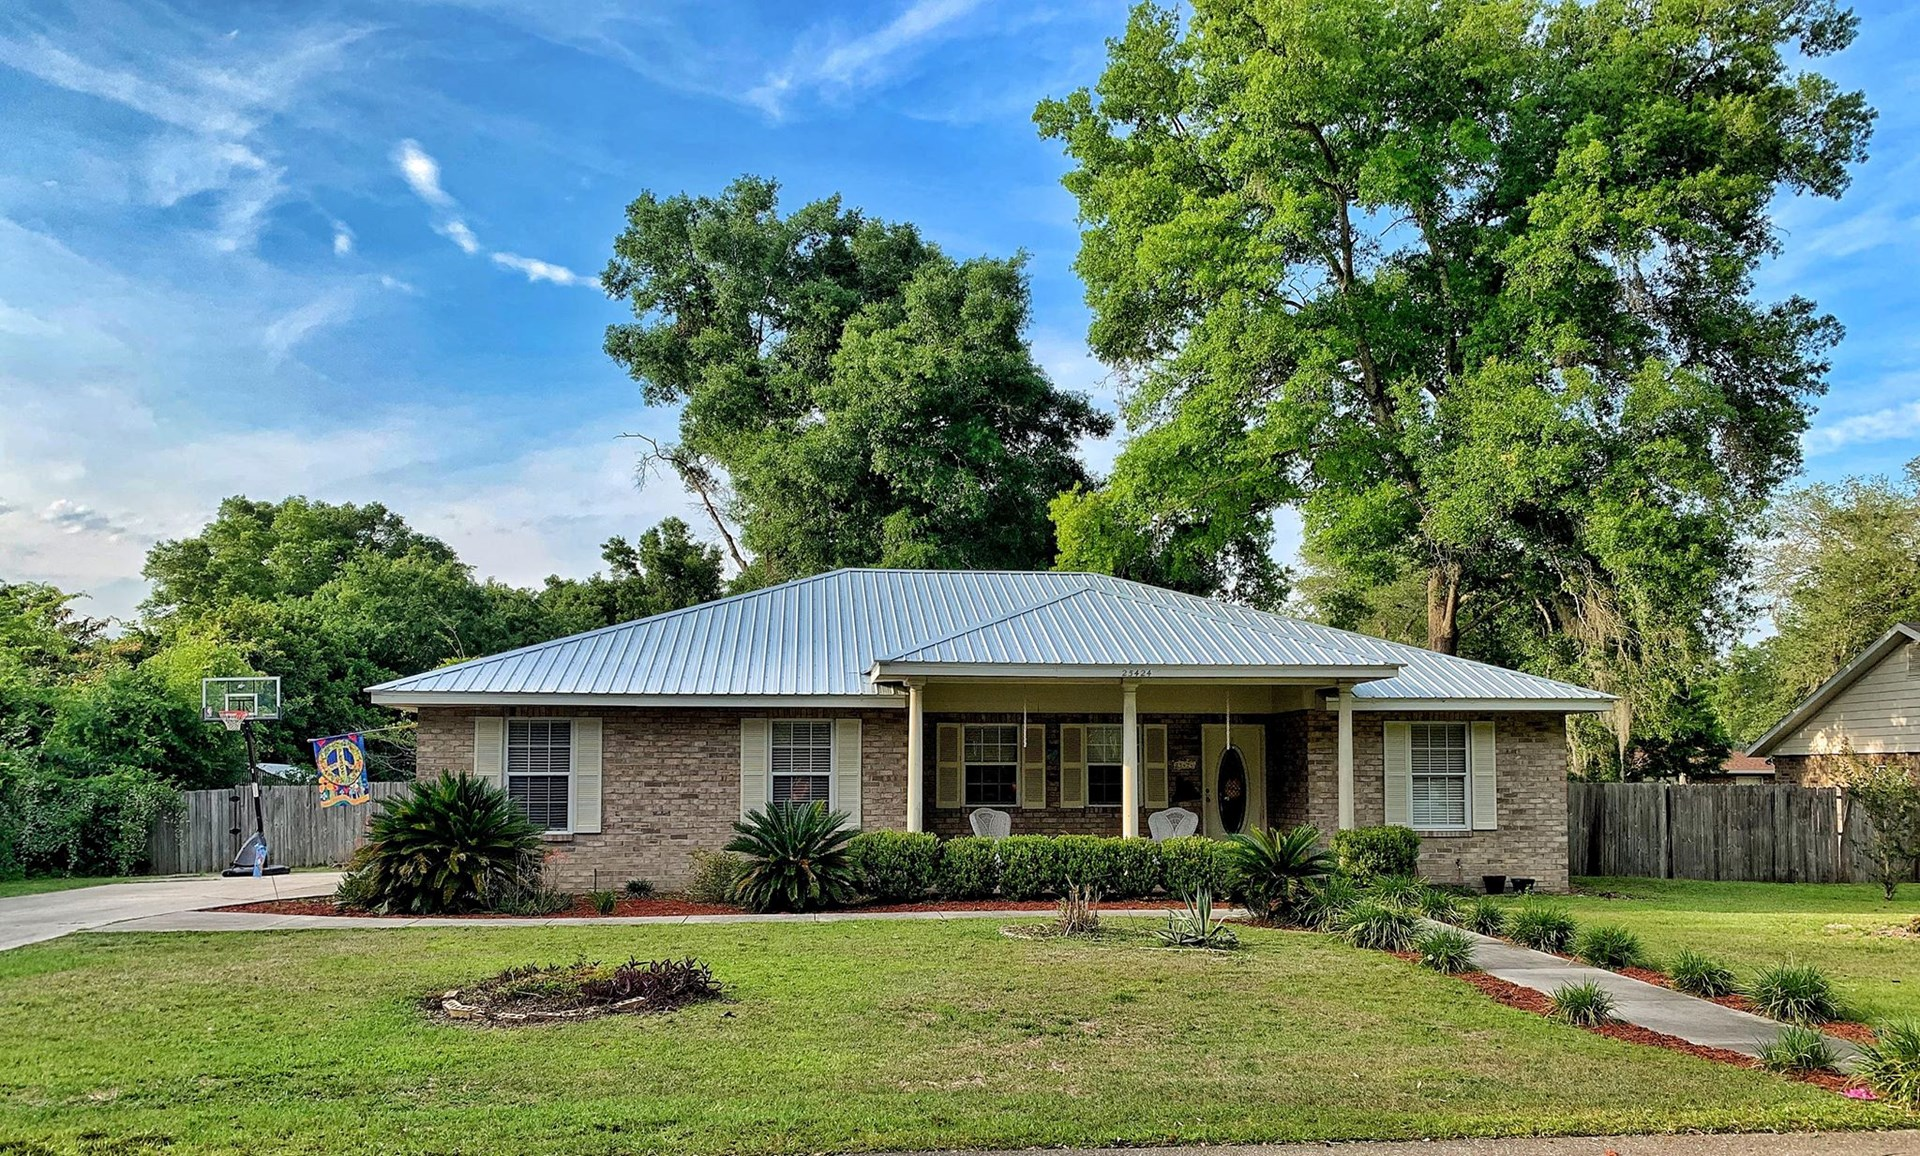 GREAT HOME IN COUNTRY WAY S/D- Newberry, Florida